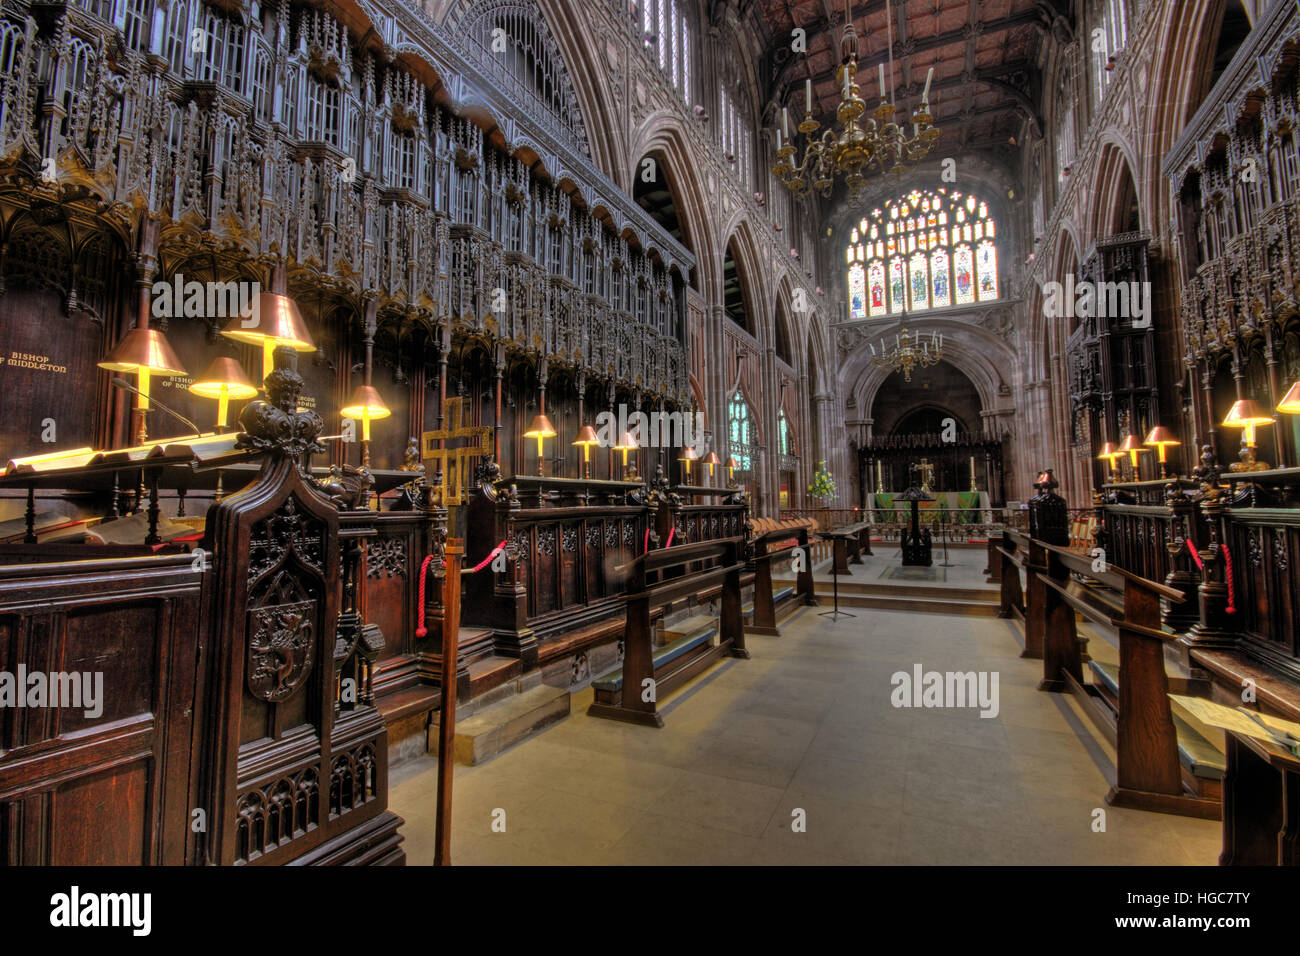 Manchester Cathedral Choir Area, North West England, UK - Stock Image